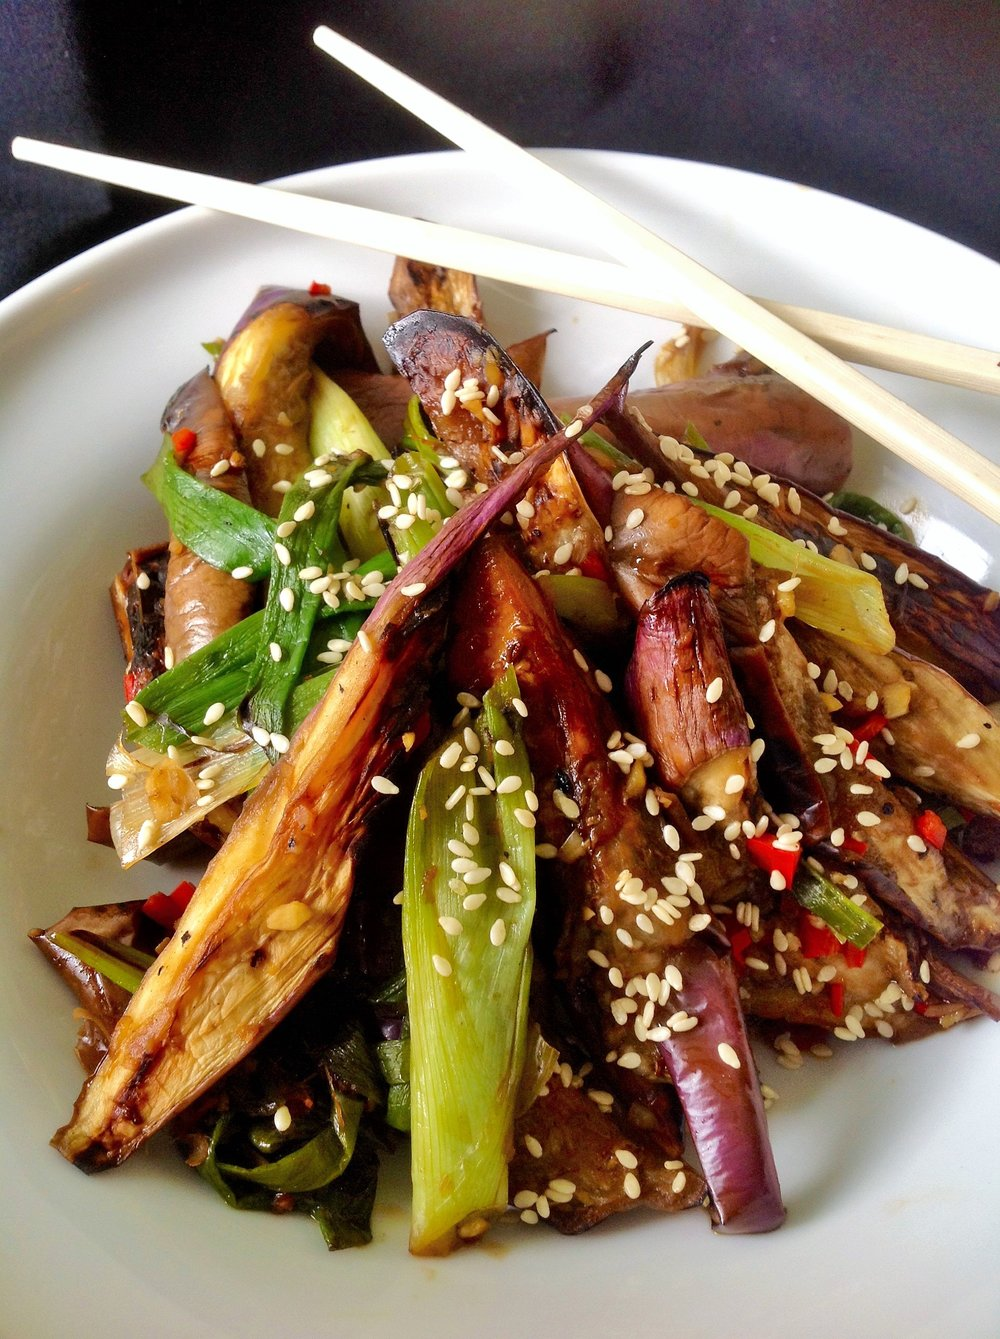 Chinese Eggplant Stir-Fry - Healthy, Plant-Based, Oil-Free, Gluten-Free, Vegan, Asian Dinner Recipe